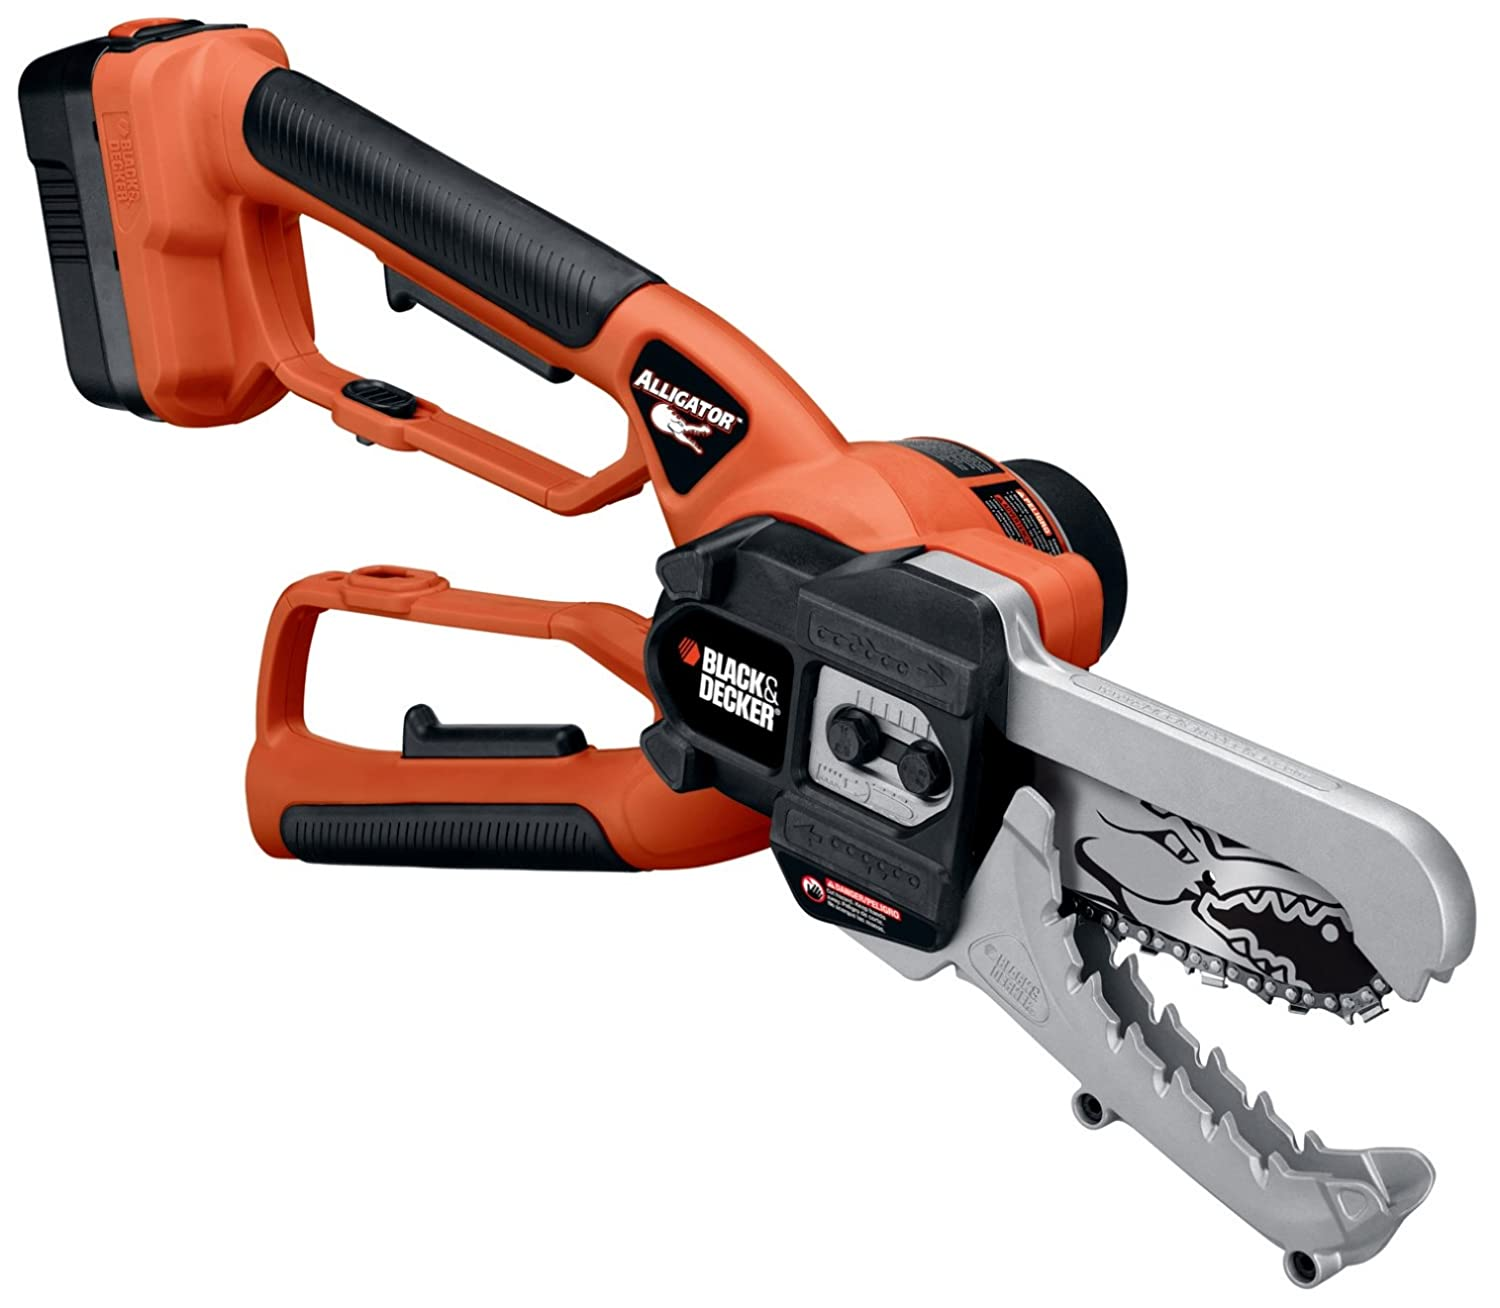 Black & Deckers Black & Decker NLP1800 Alligator Lopper 18-Volt Cordless Chain Saw at Sears.com